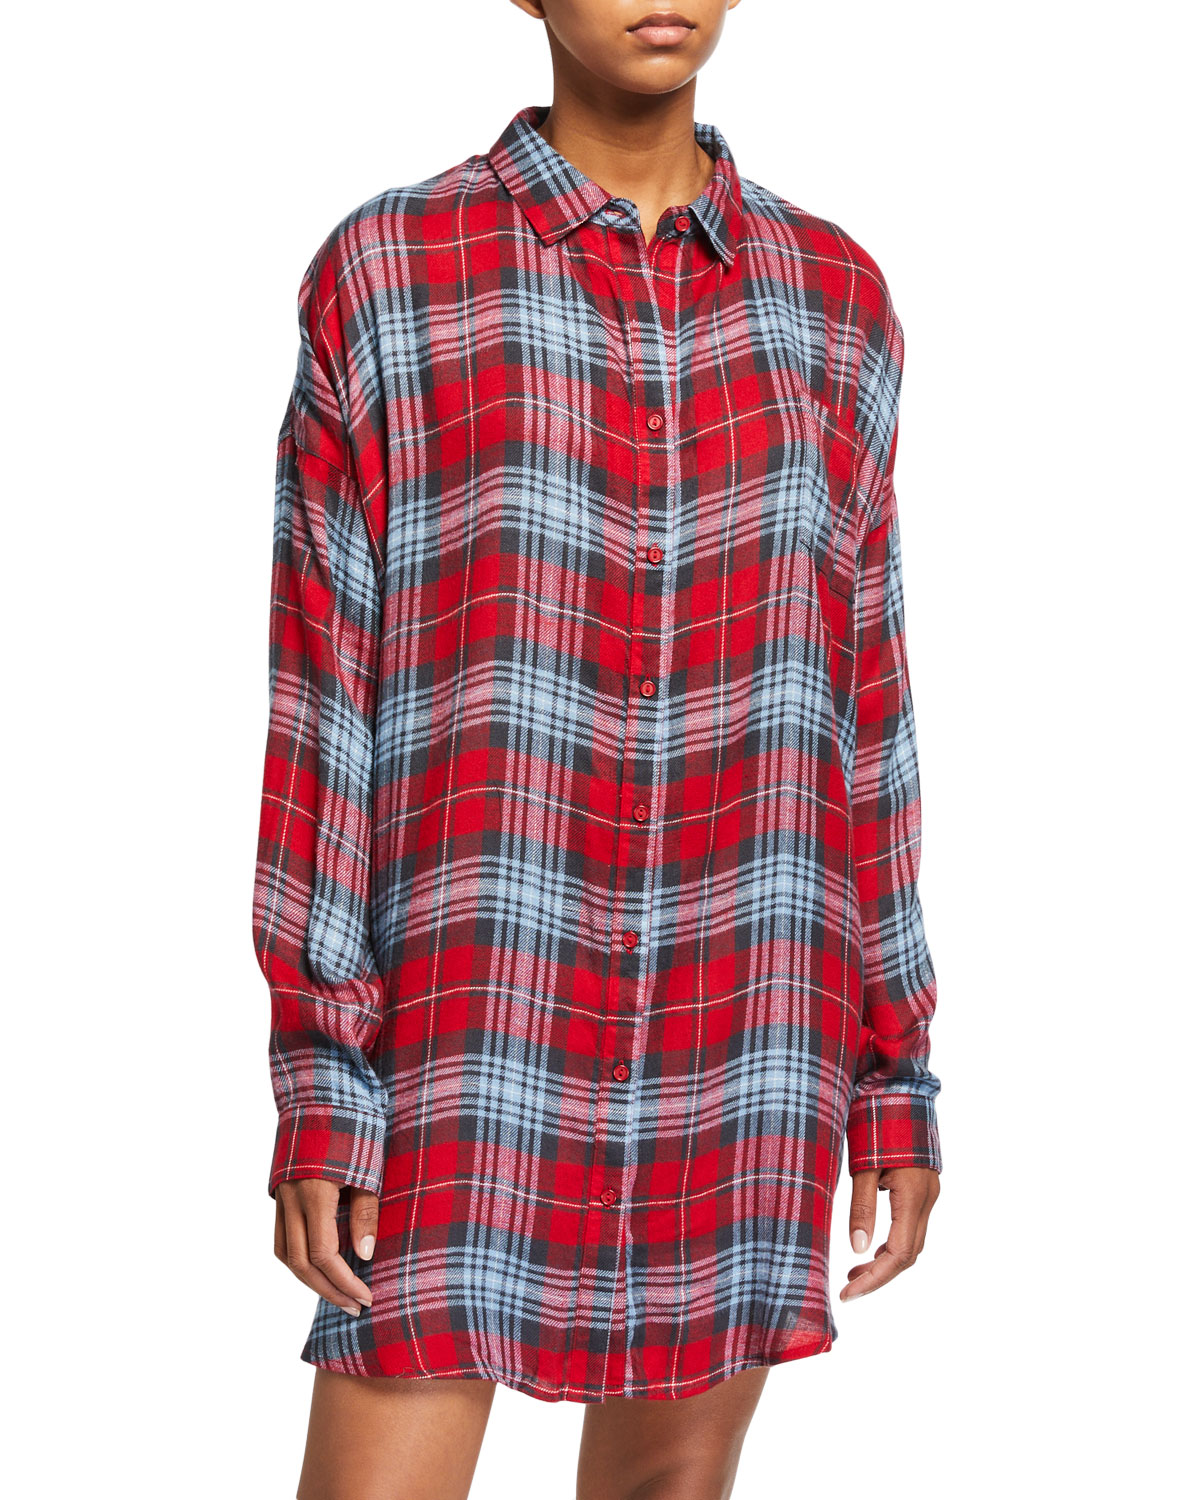 Pj Salvage SNOWED IN PLAID SLEEP SHIRT